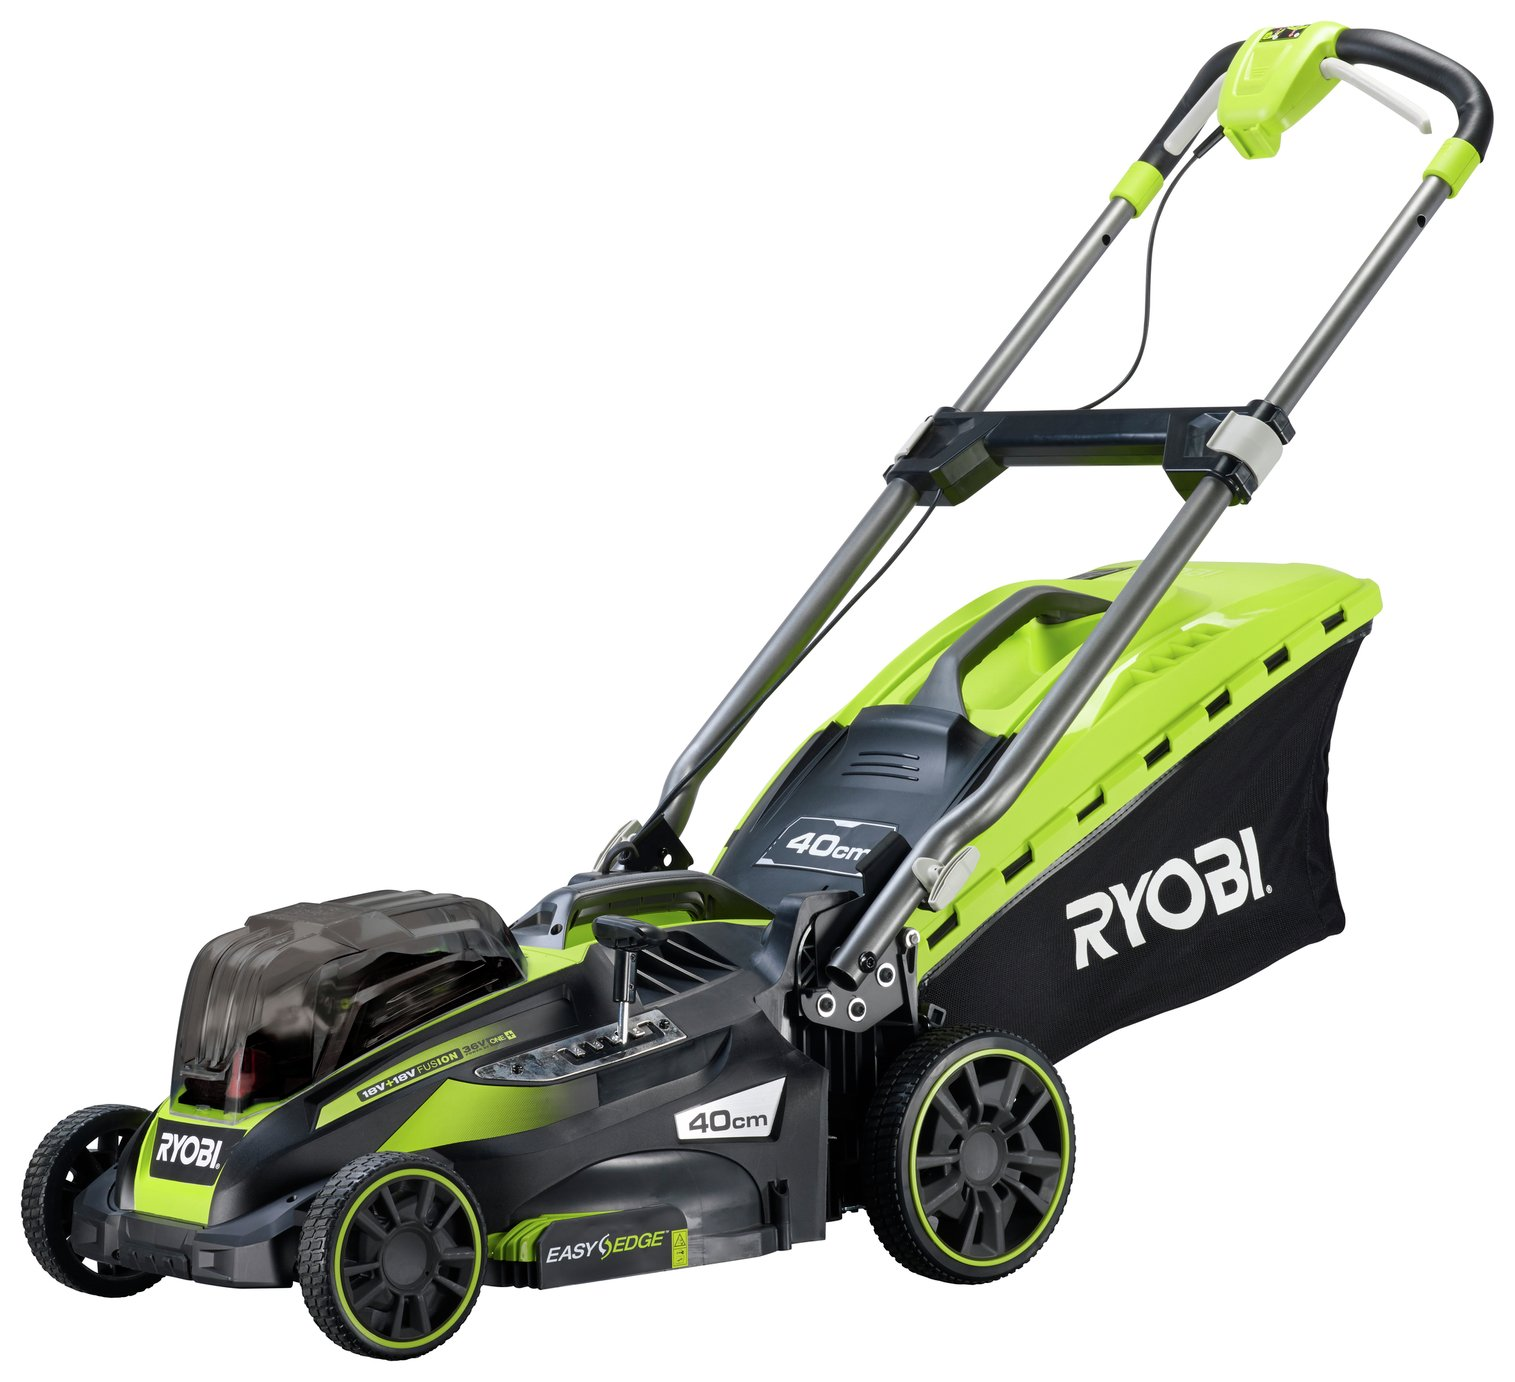 Ryobi RLM18X41H240 40cm Cordless Lawnmower with 2 Batteries